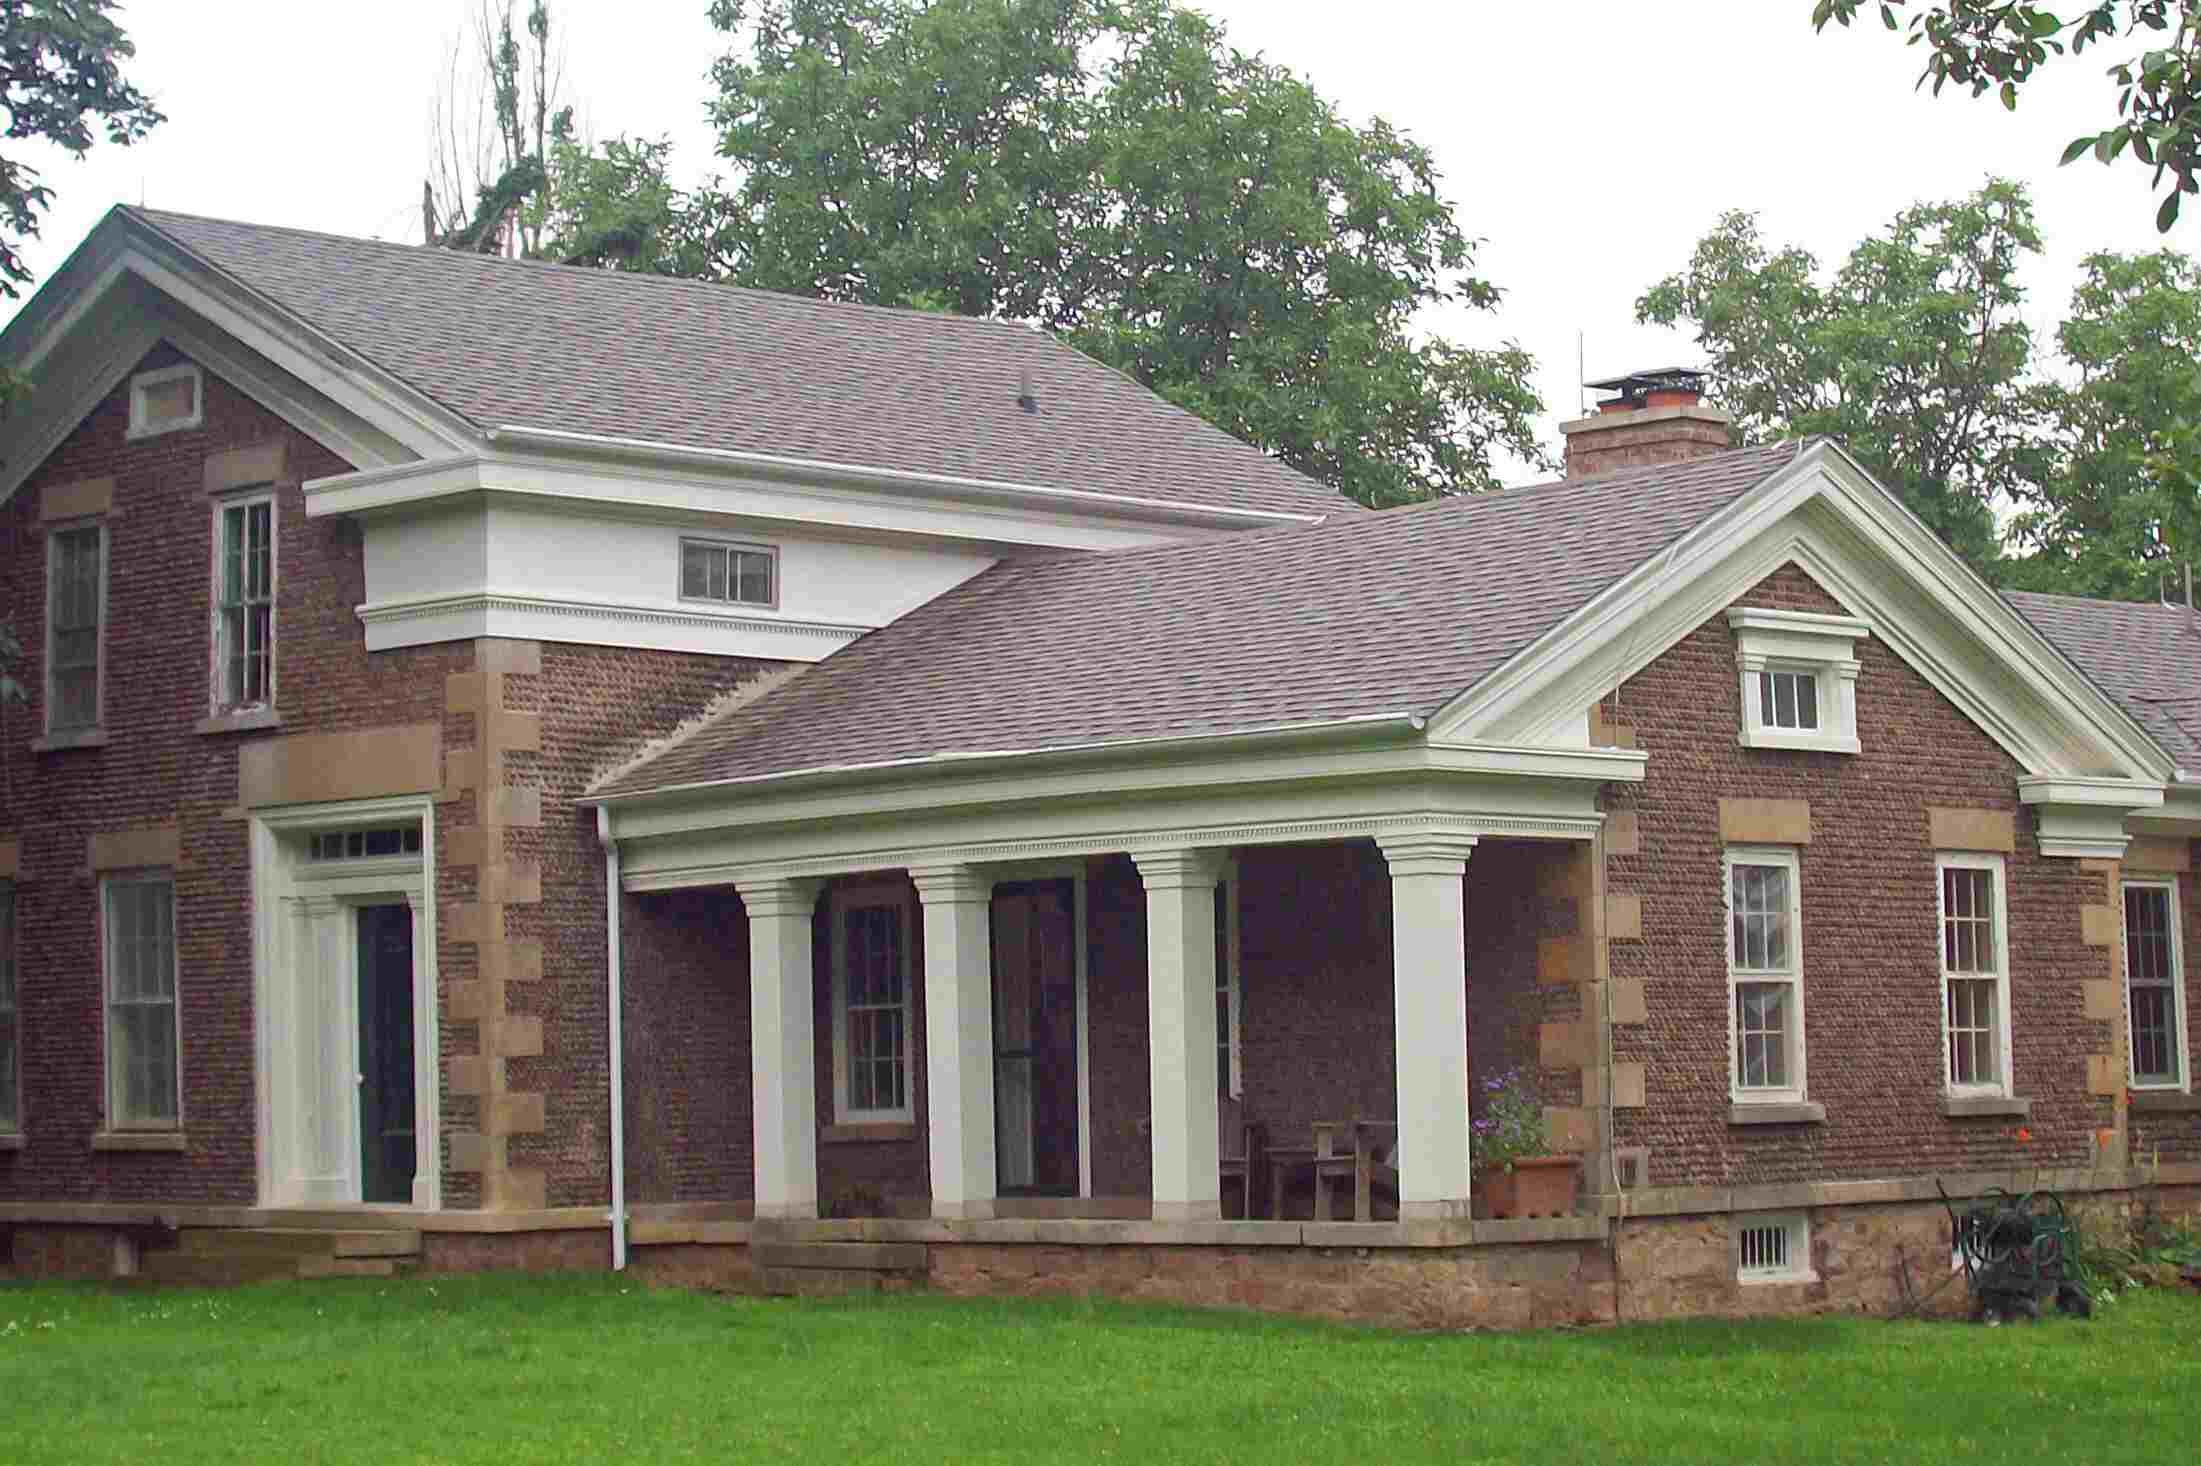 2 story front gable house with quoins and one-story side gable extension with open porch of 4 pillars